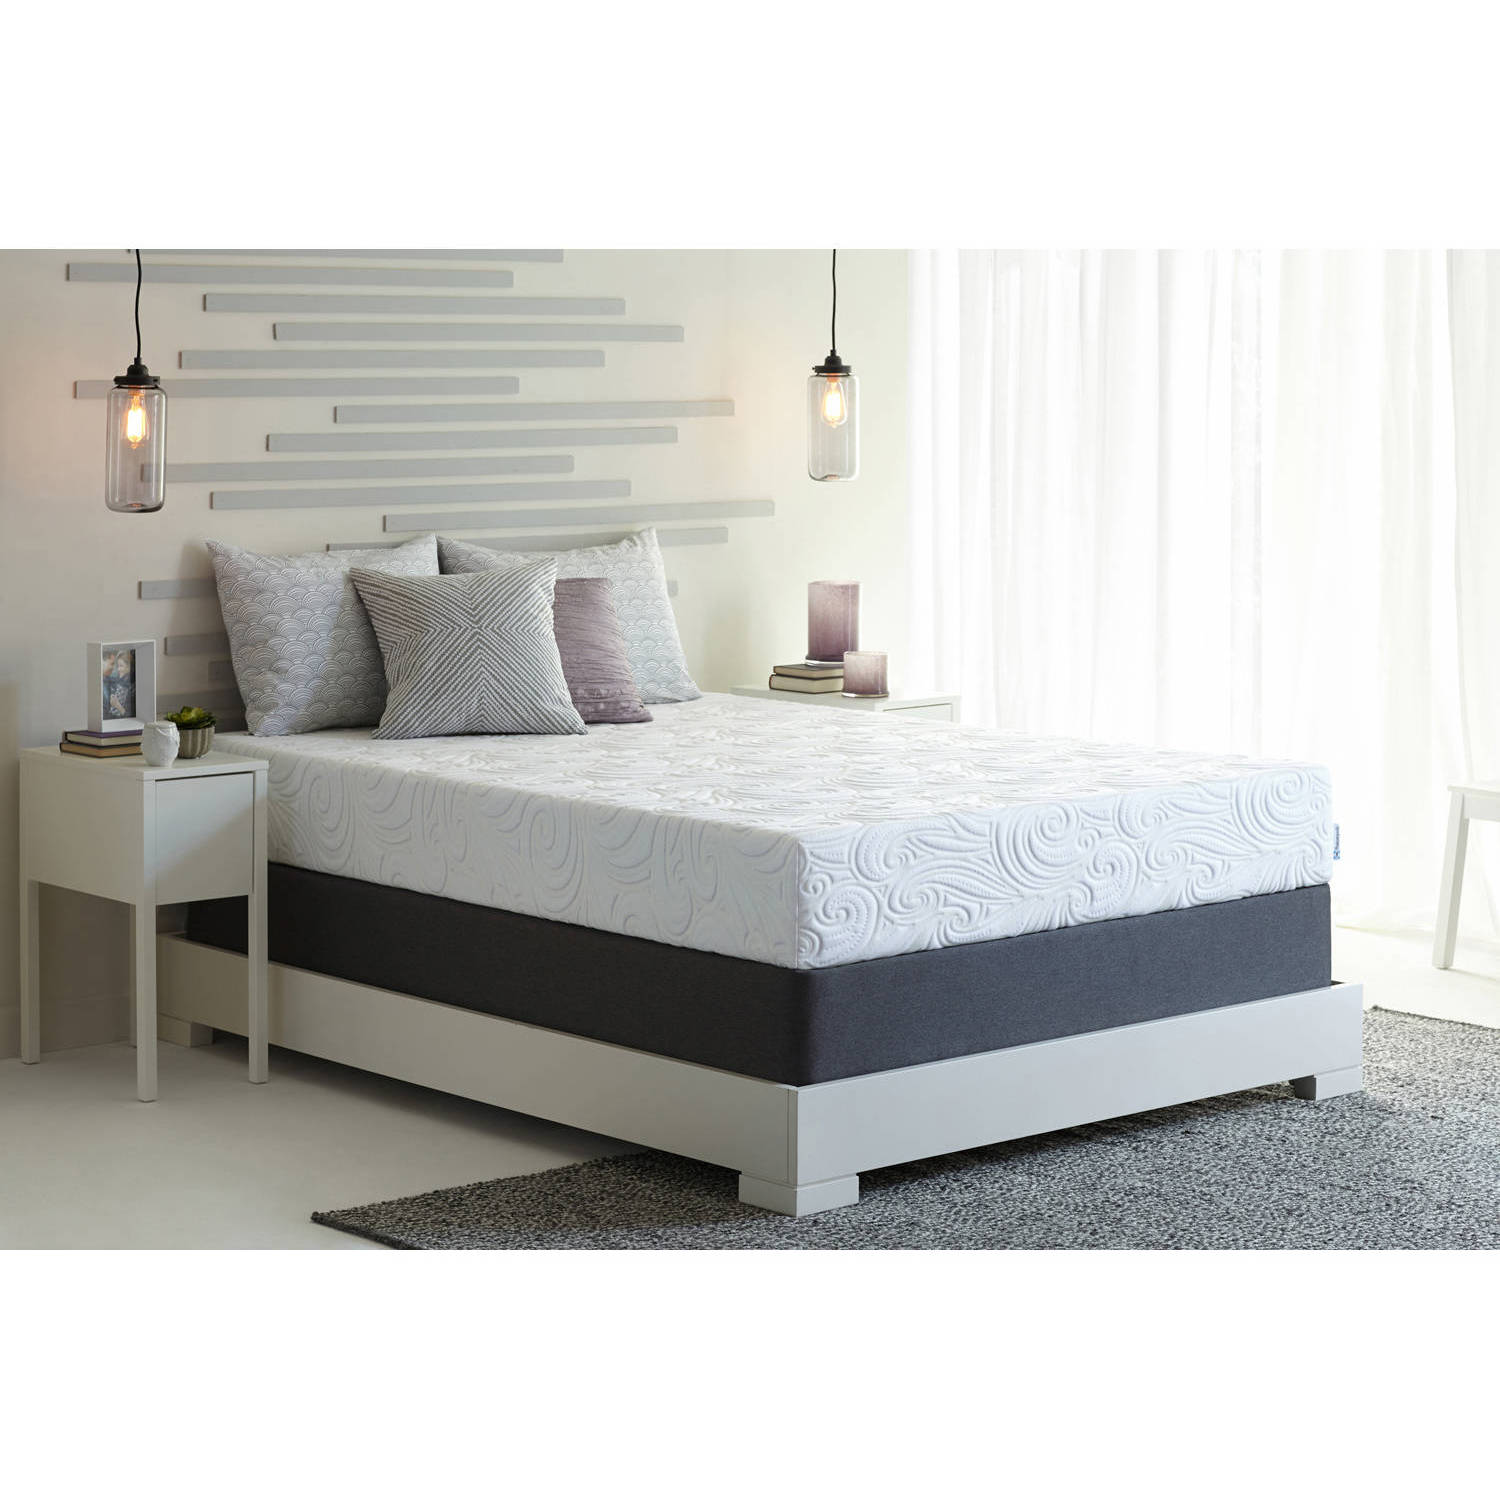 Sealy Posturepedic Optimum Truharmony Mattress by Sealy